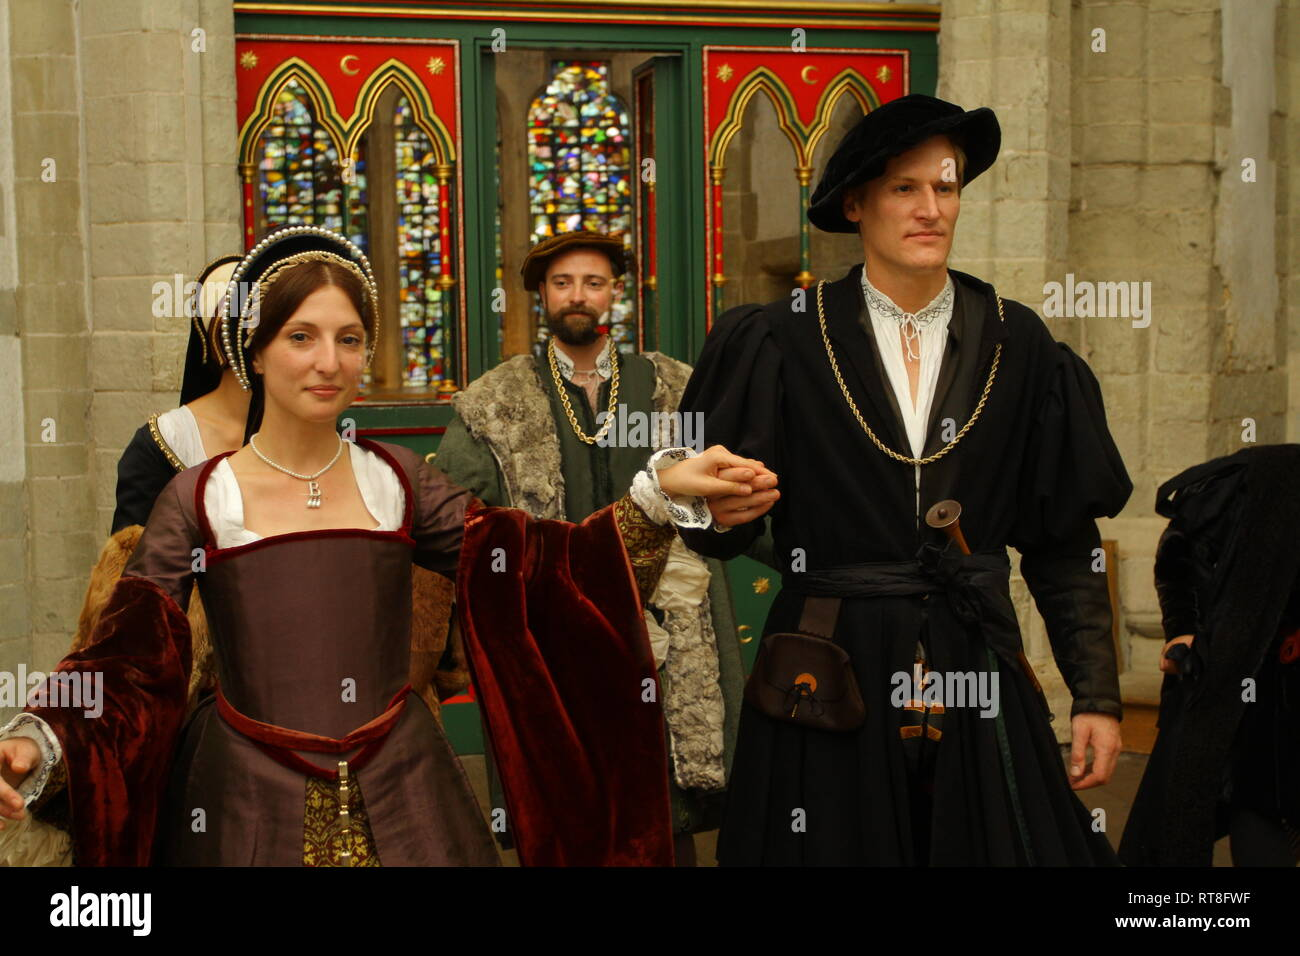 Anne Boleyn and Henry VIII are art a dance with courtiers at The Tower of London - Stock Image